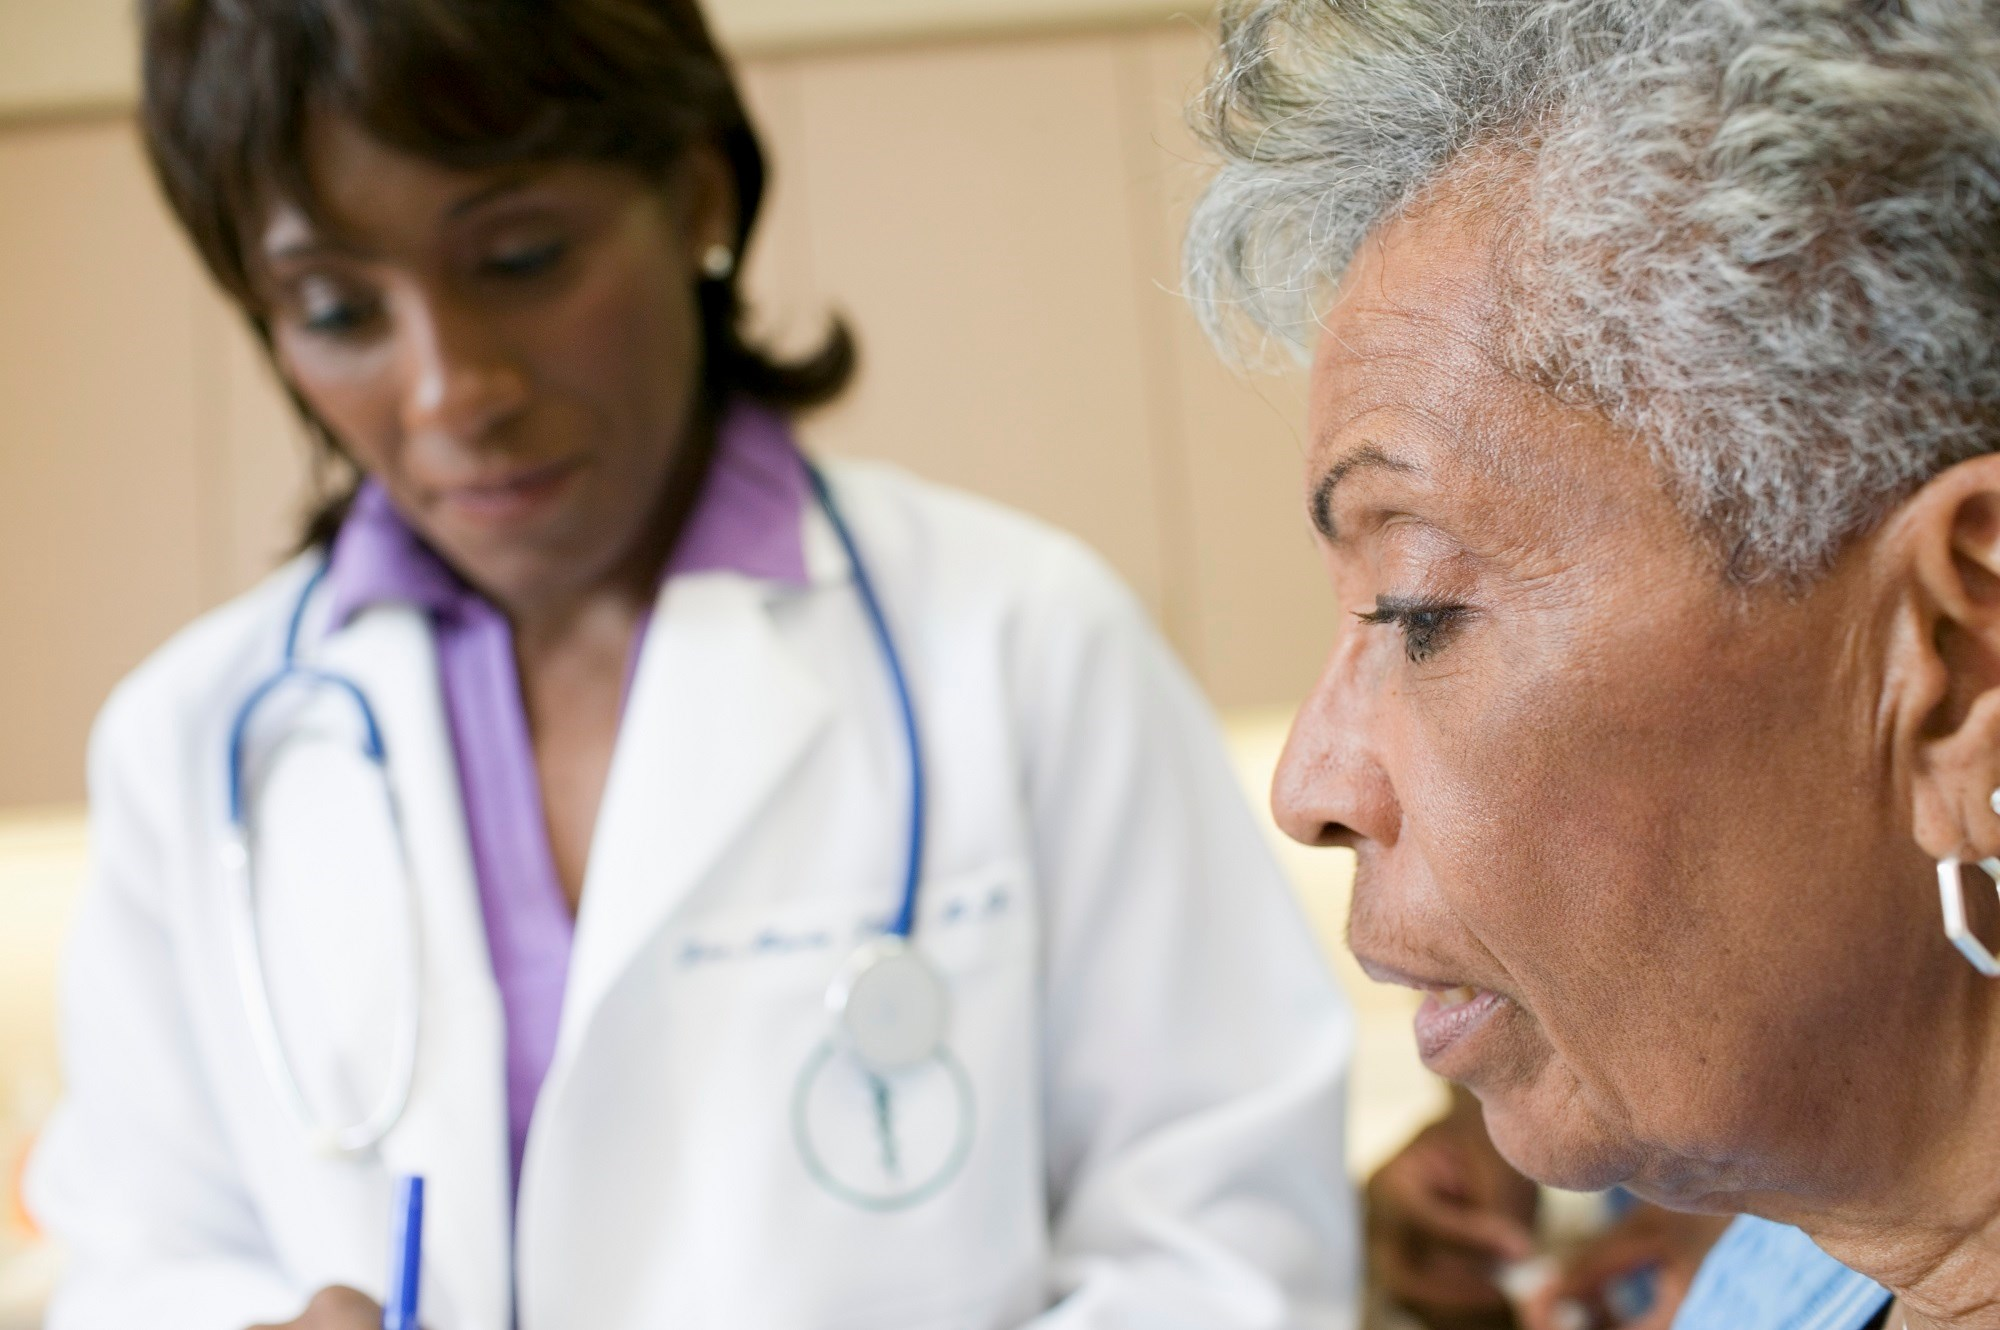 Hypercalcemia: An Incidental Finding in a Postmenopausal Woman